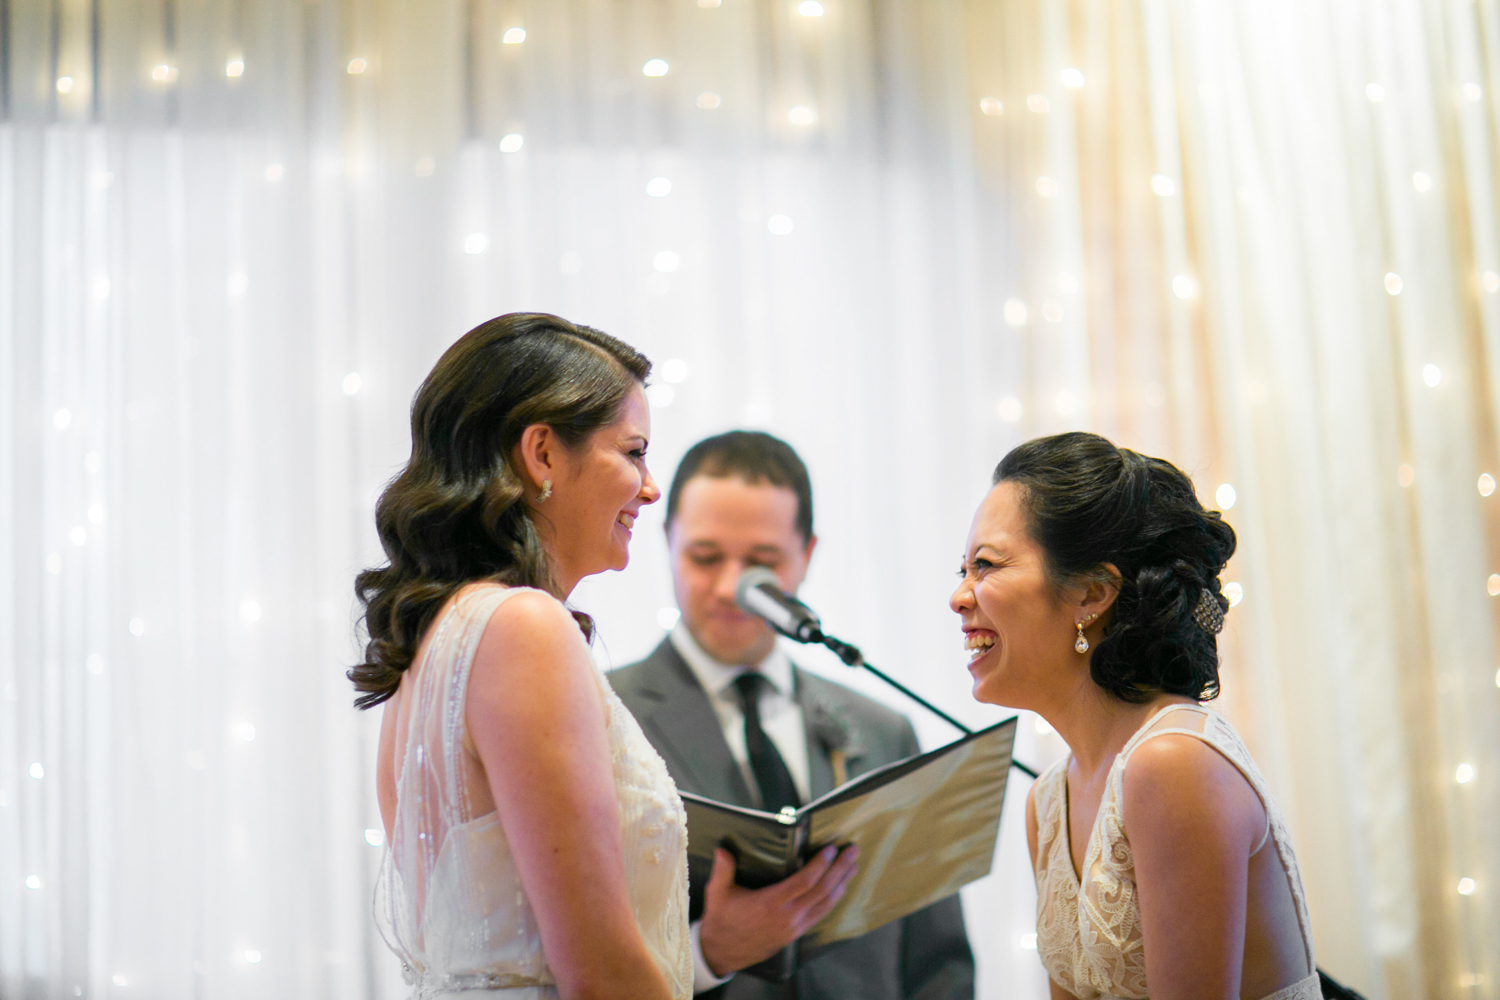 Lesbian wedding in Brooklyn | photographed by Amber Marlow, NYC